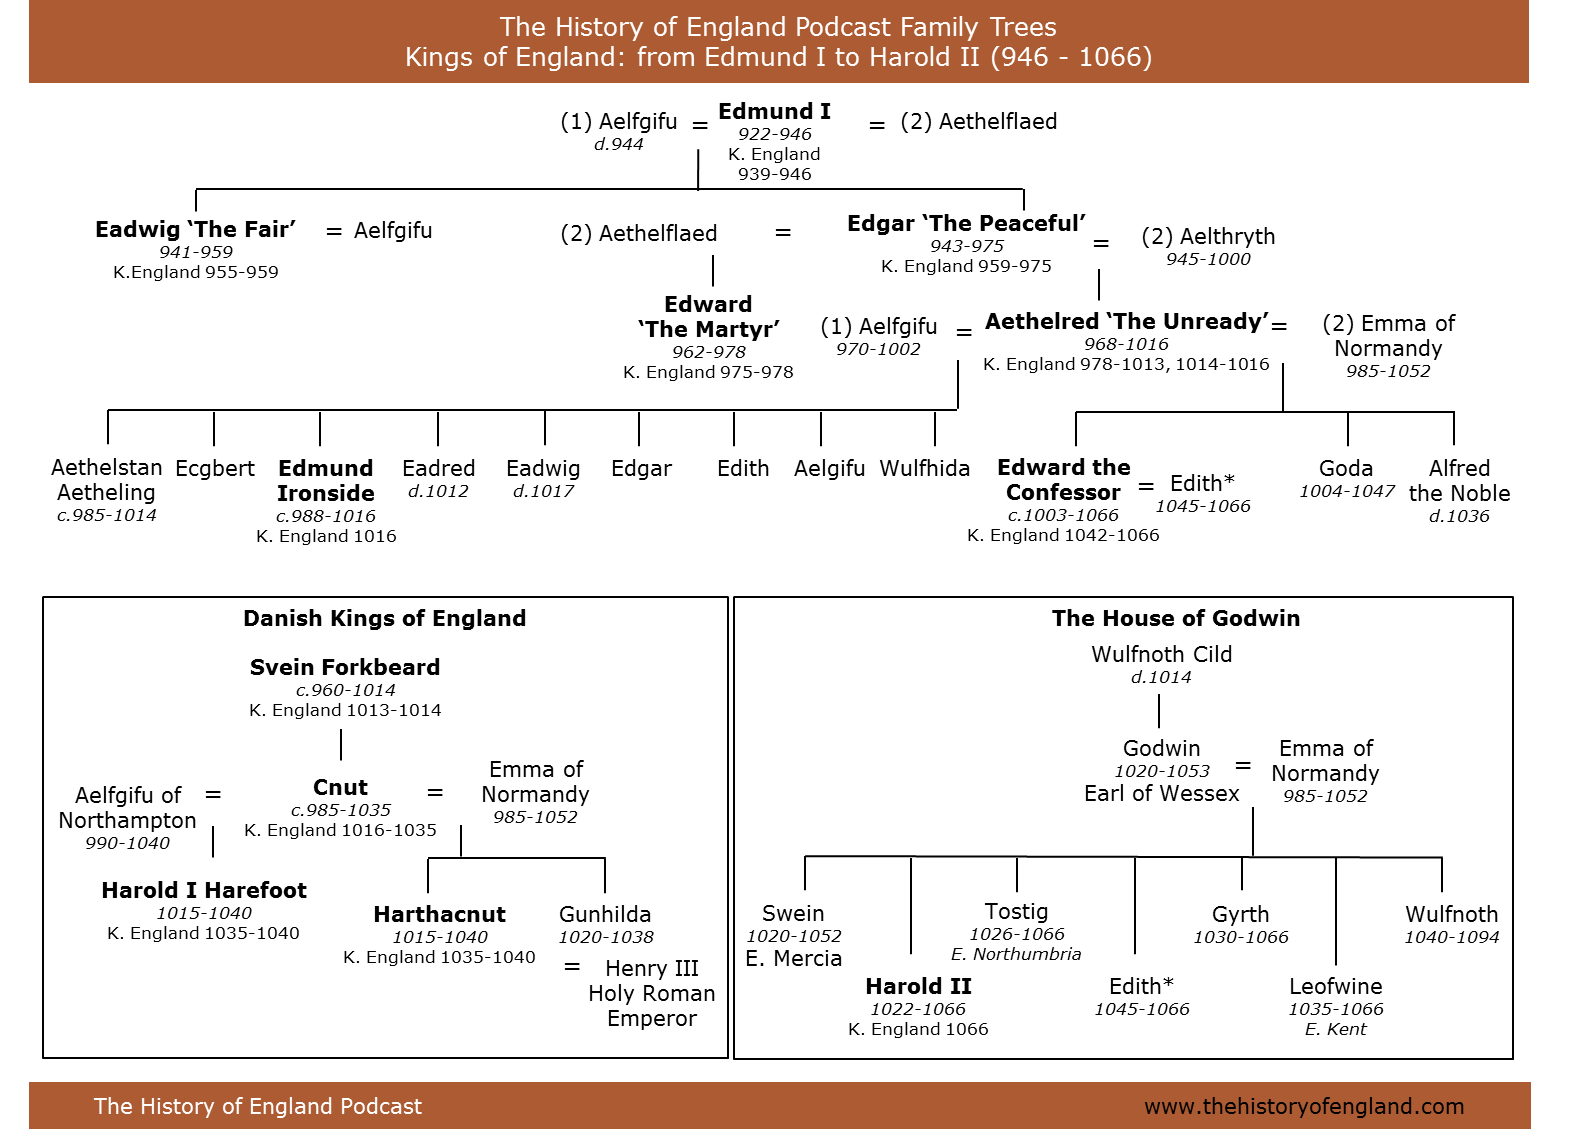 family trees the history of england family tree of anglo saxona nd danish kings of england 946 1066